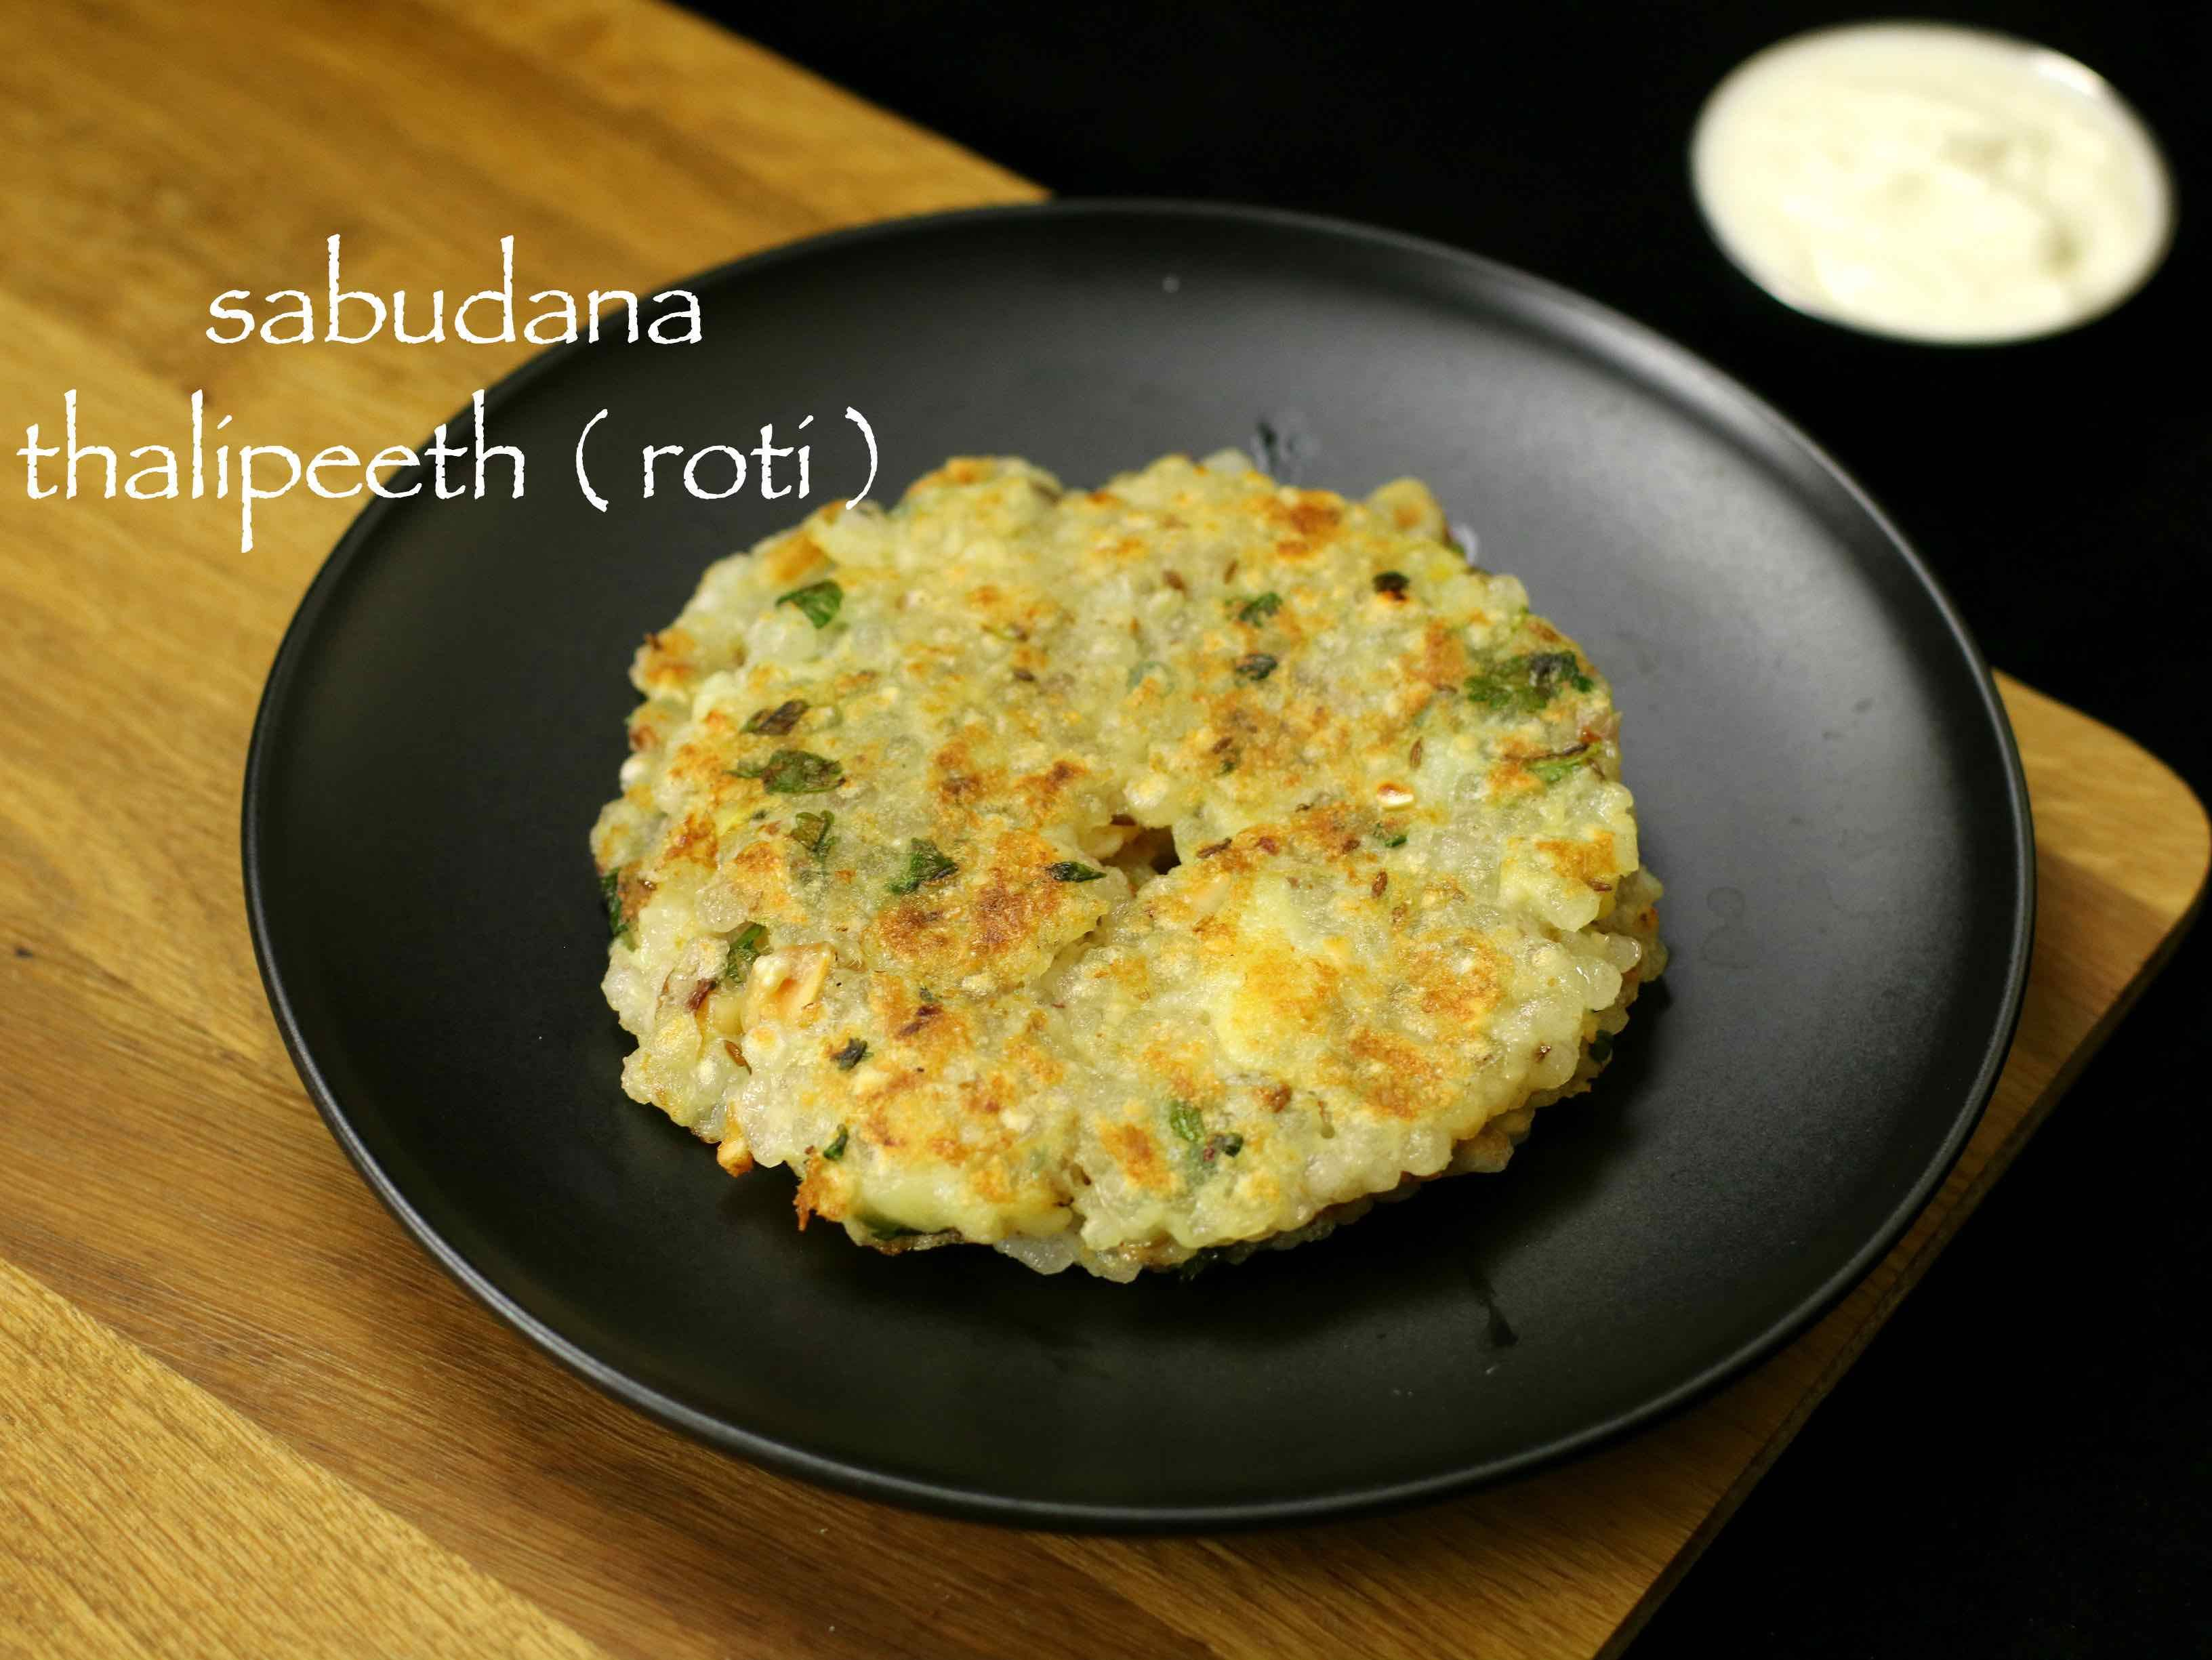 Sabudana thalipeeth recipe sabakki rotti sabudana roti with step sabudana thalipeeth recipe sabakki rotti sabudana roti with step by step photovideo indian food forumfinder